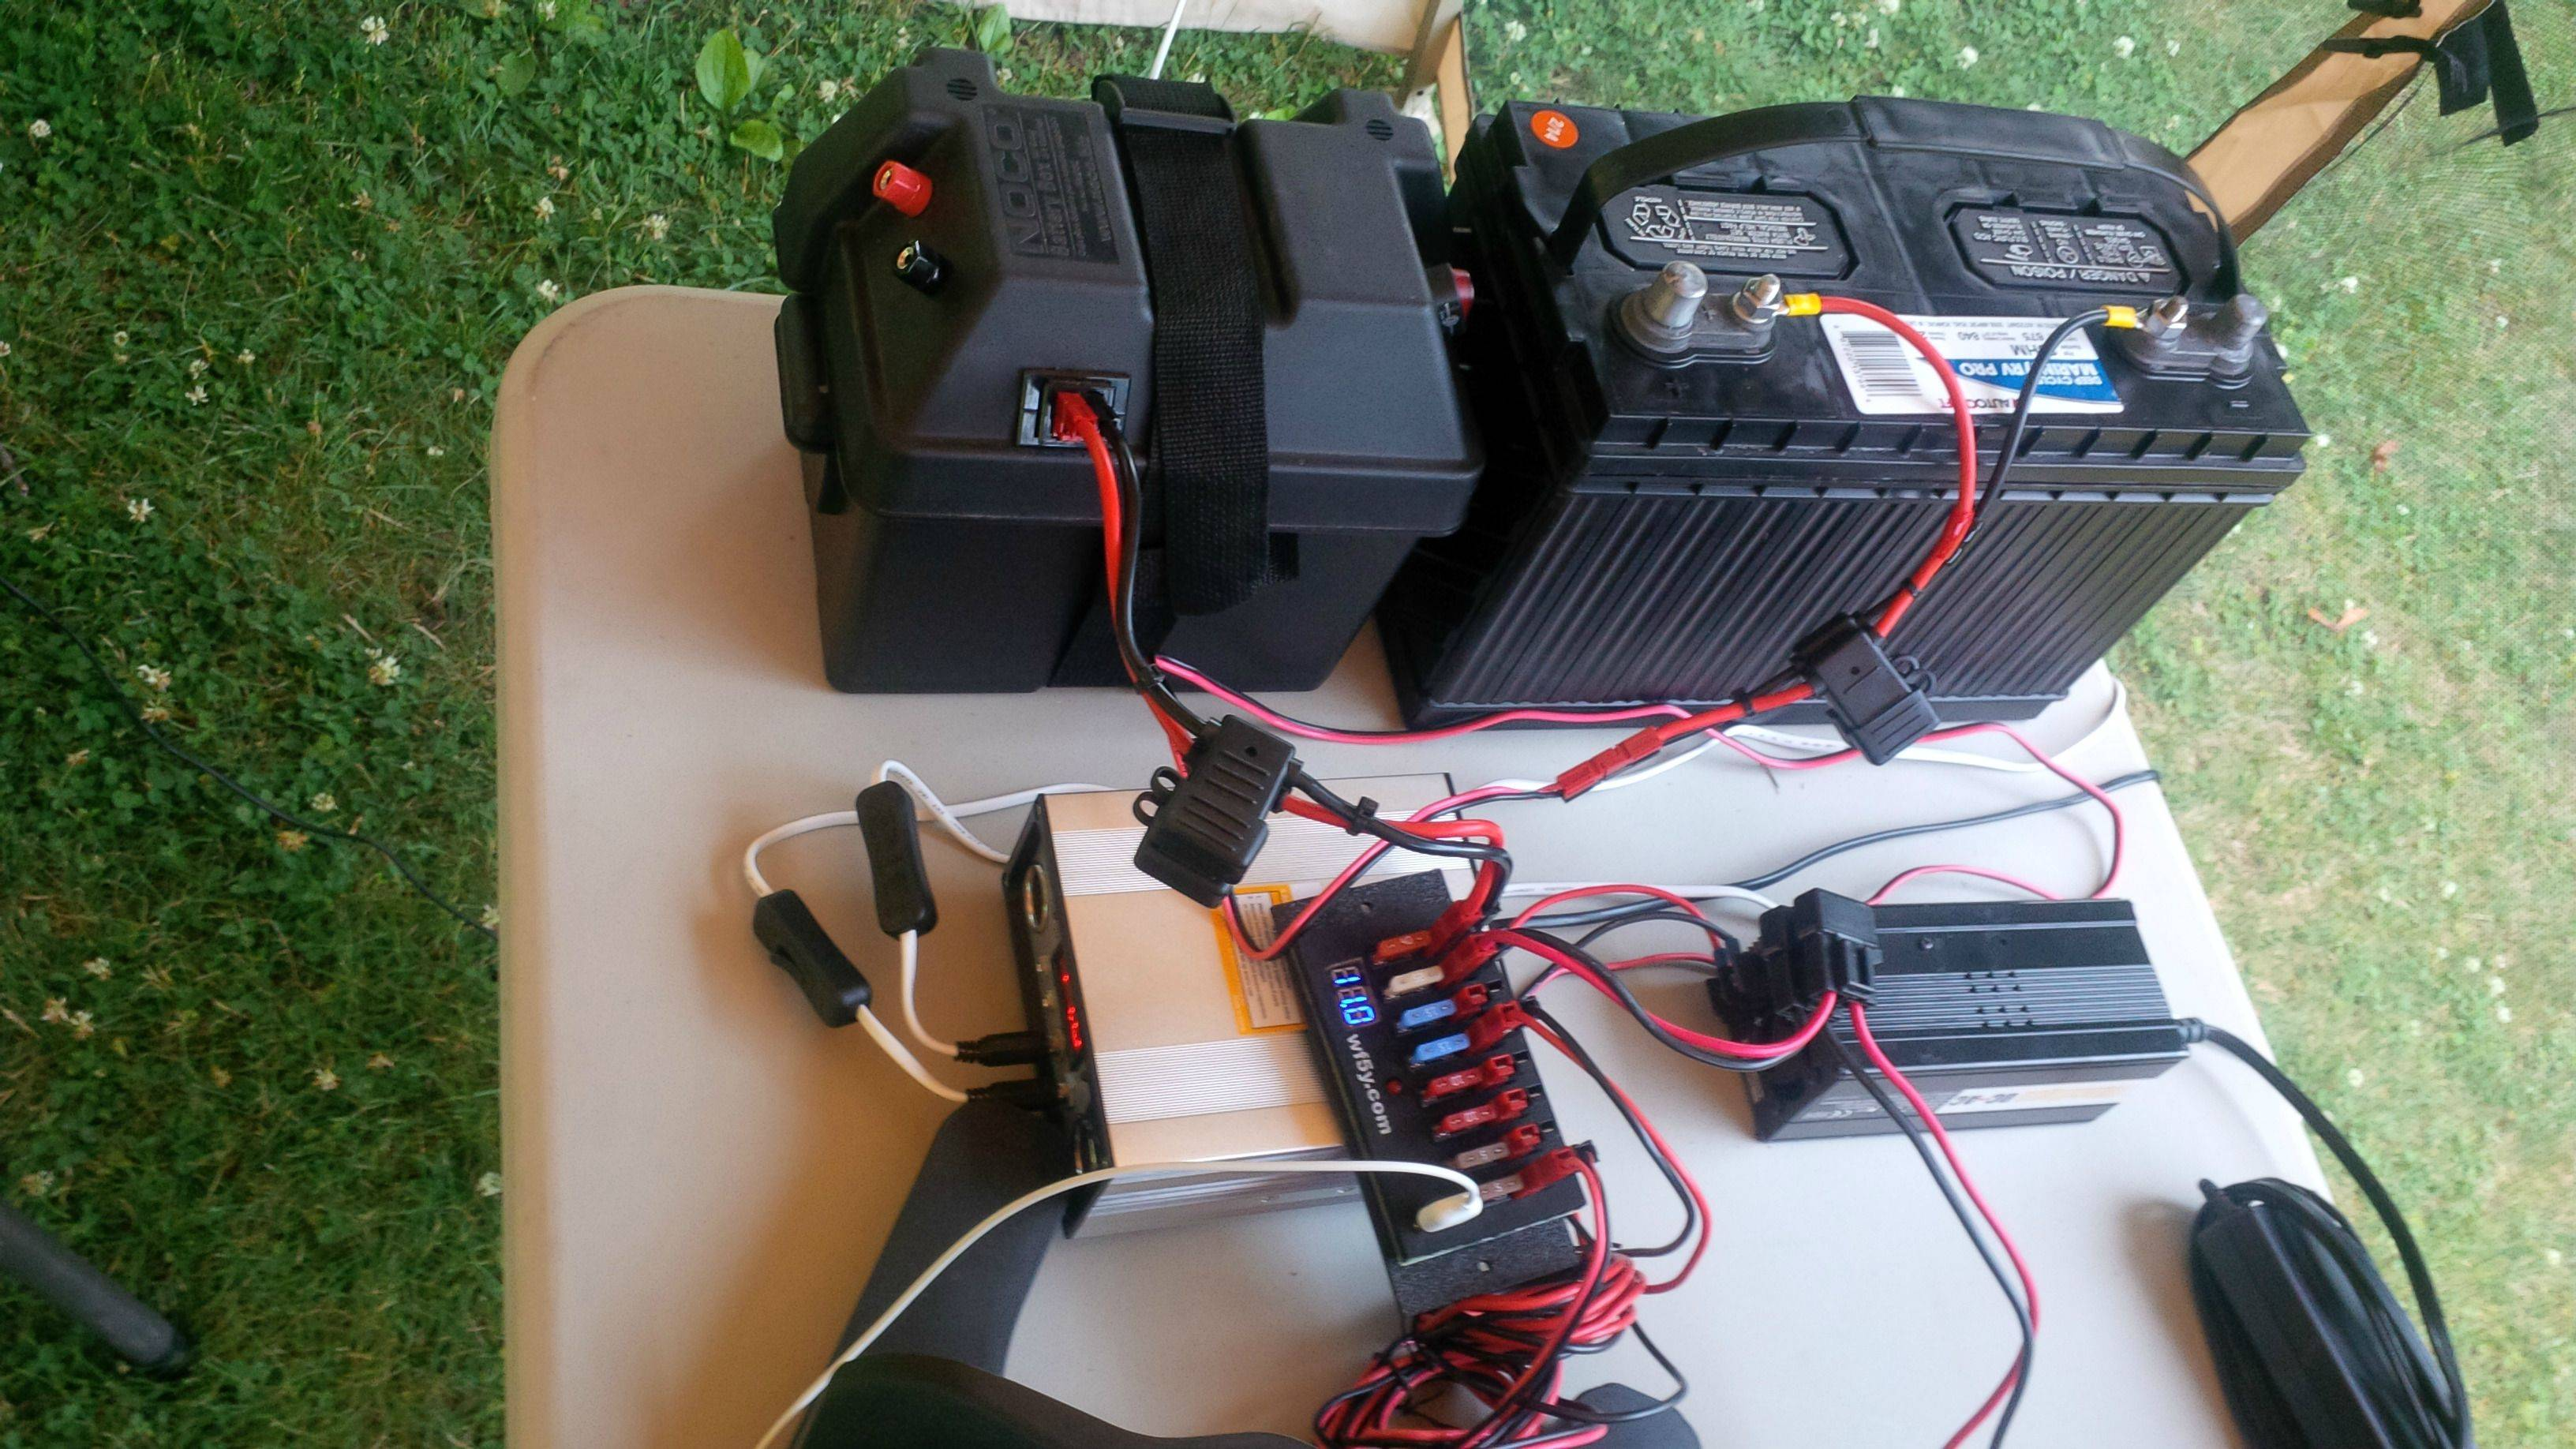 2-k2jji-field-day-2014-5a-nny-digital-station-2-batteries